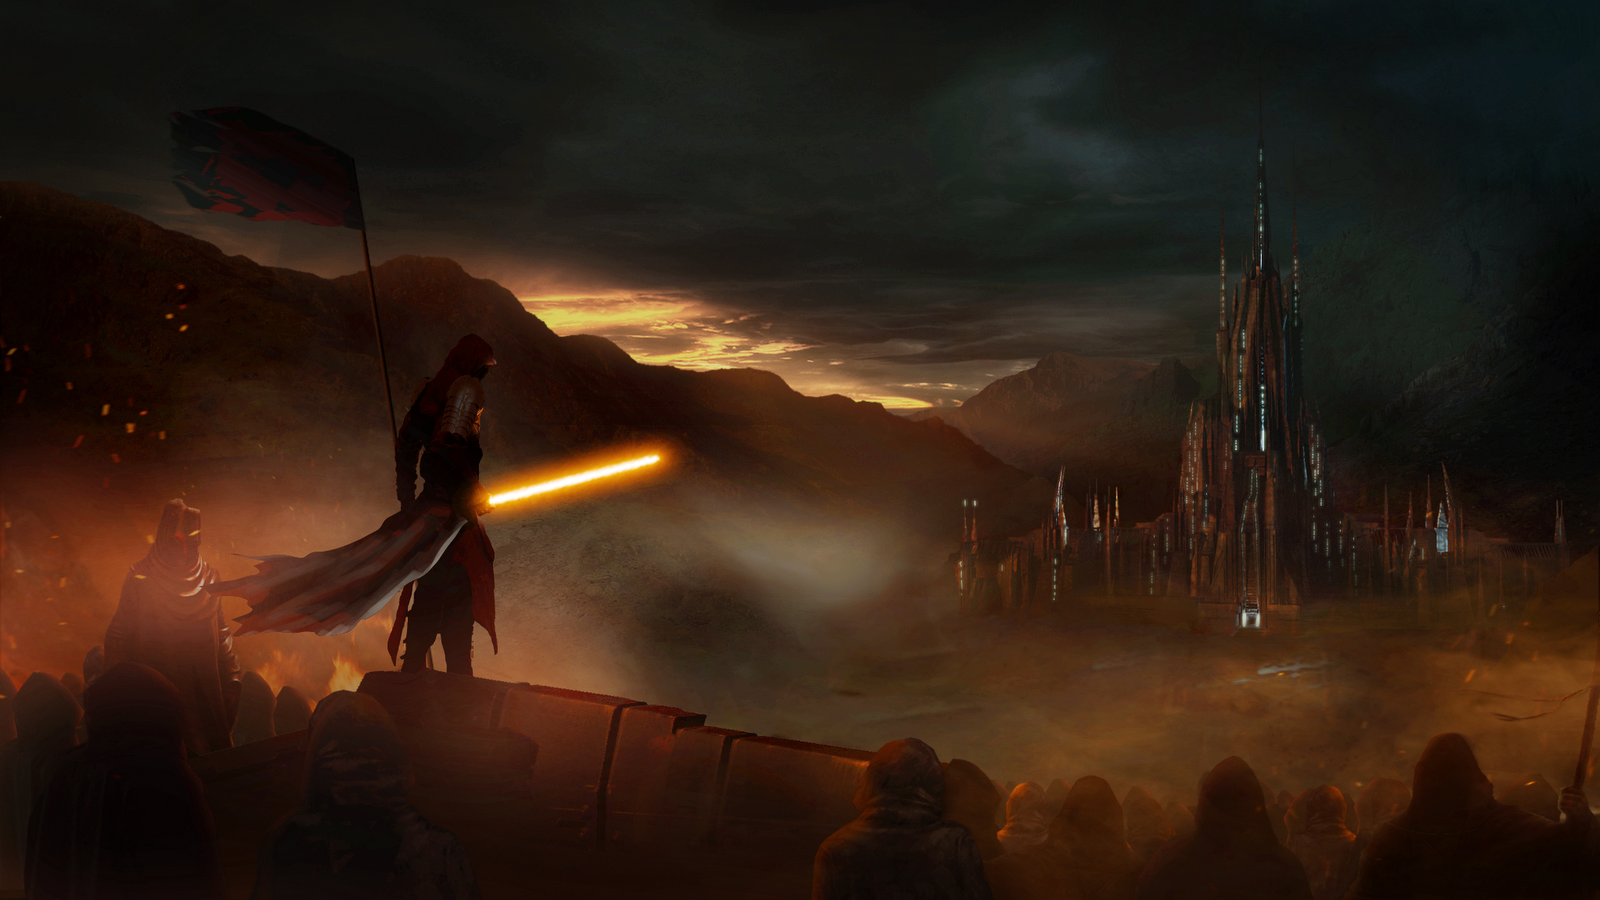 star wars drak fantasy wallpaper